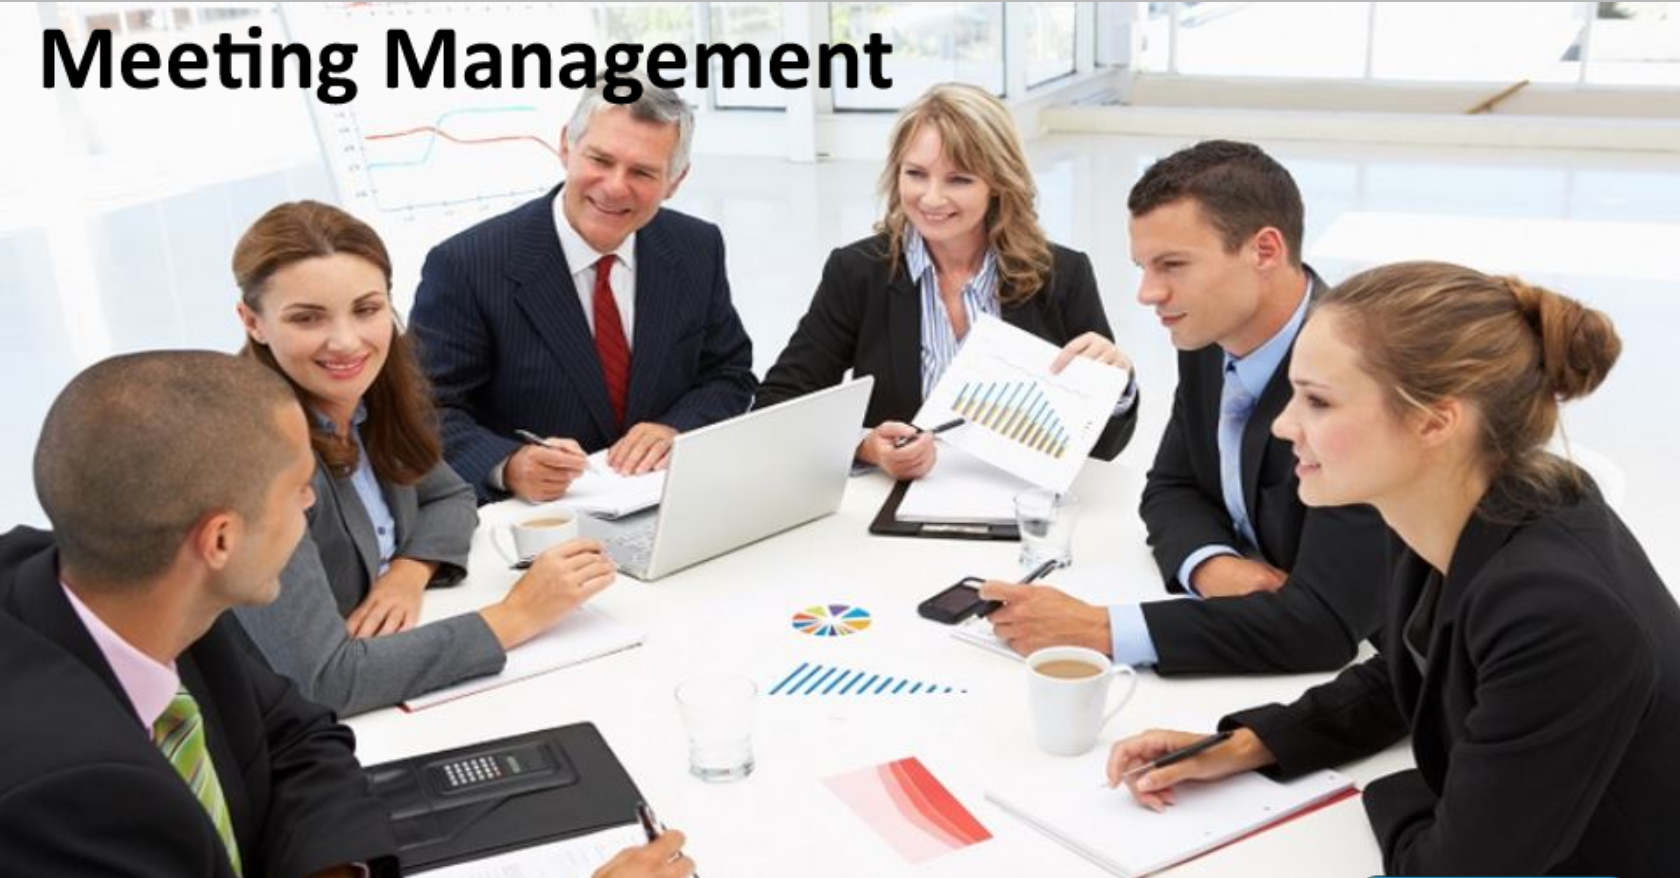 Meeting Management